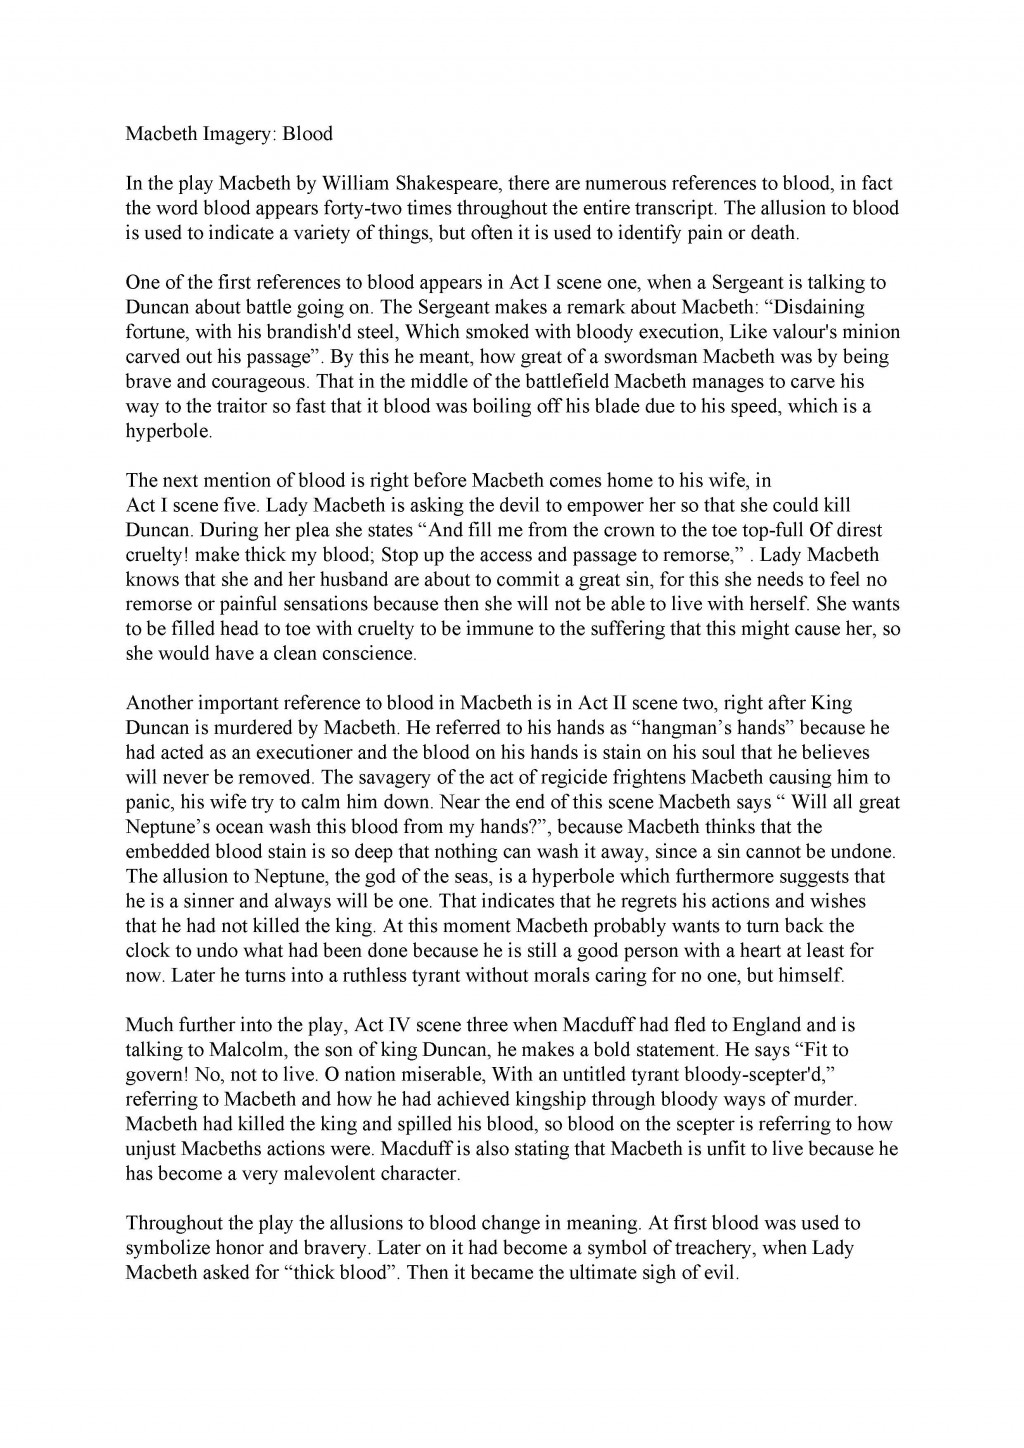 003 Rutgers Essay Example Macbeth Impressive Clear All Formatting For Transfer Students Examples Large